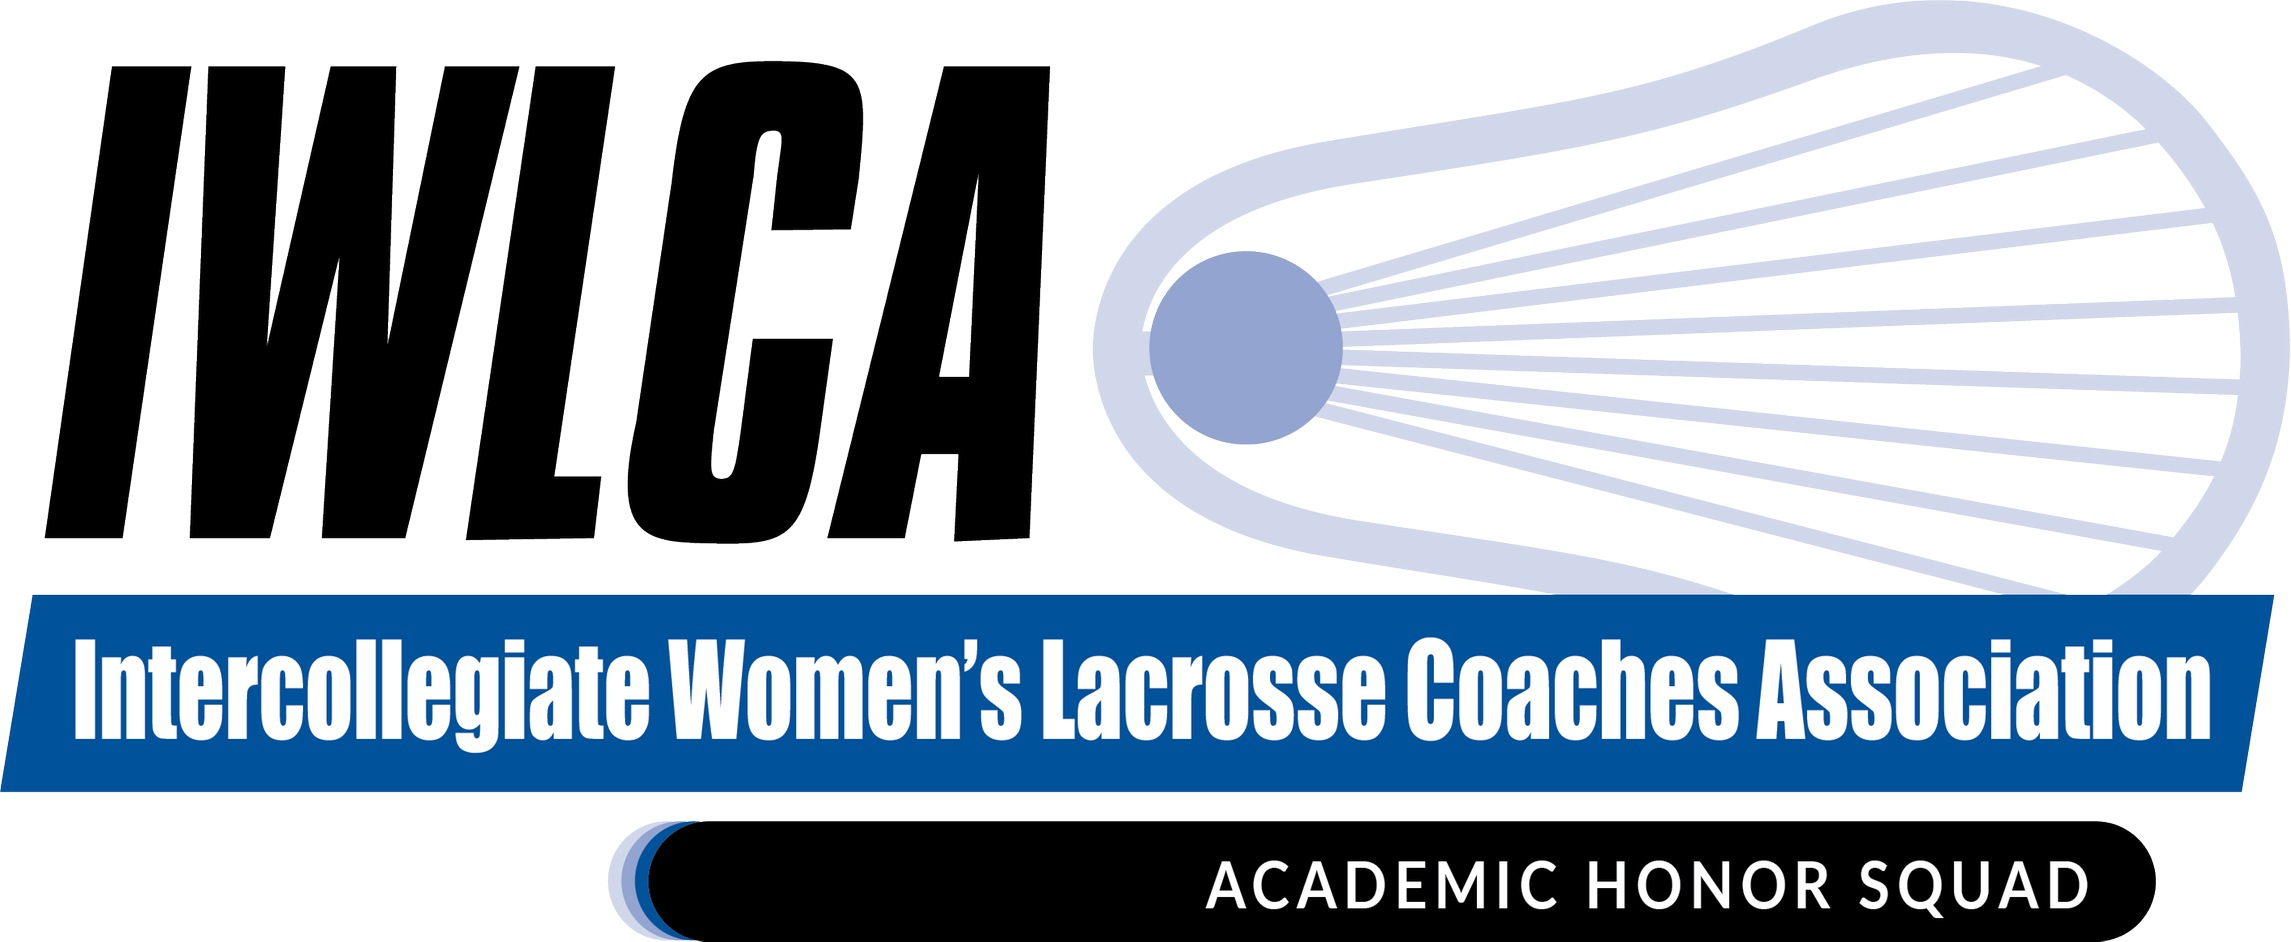 WOMEN'S LACROSSE EARNS TEAM AND INDIVIDUAL ACCOLADES ON 2018 ZAG SPORTS ACADEMIC HONOR SQUADS